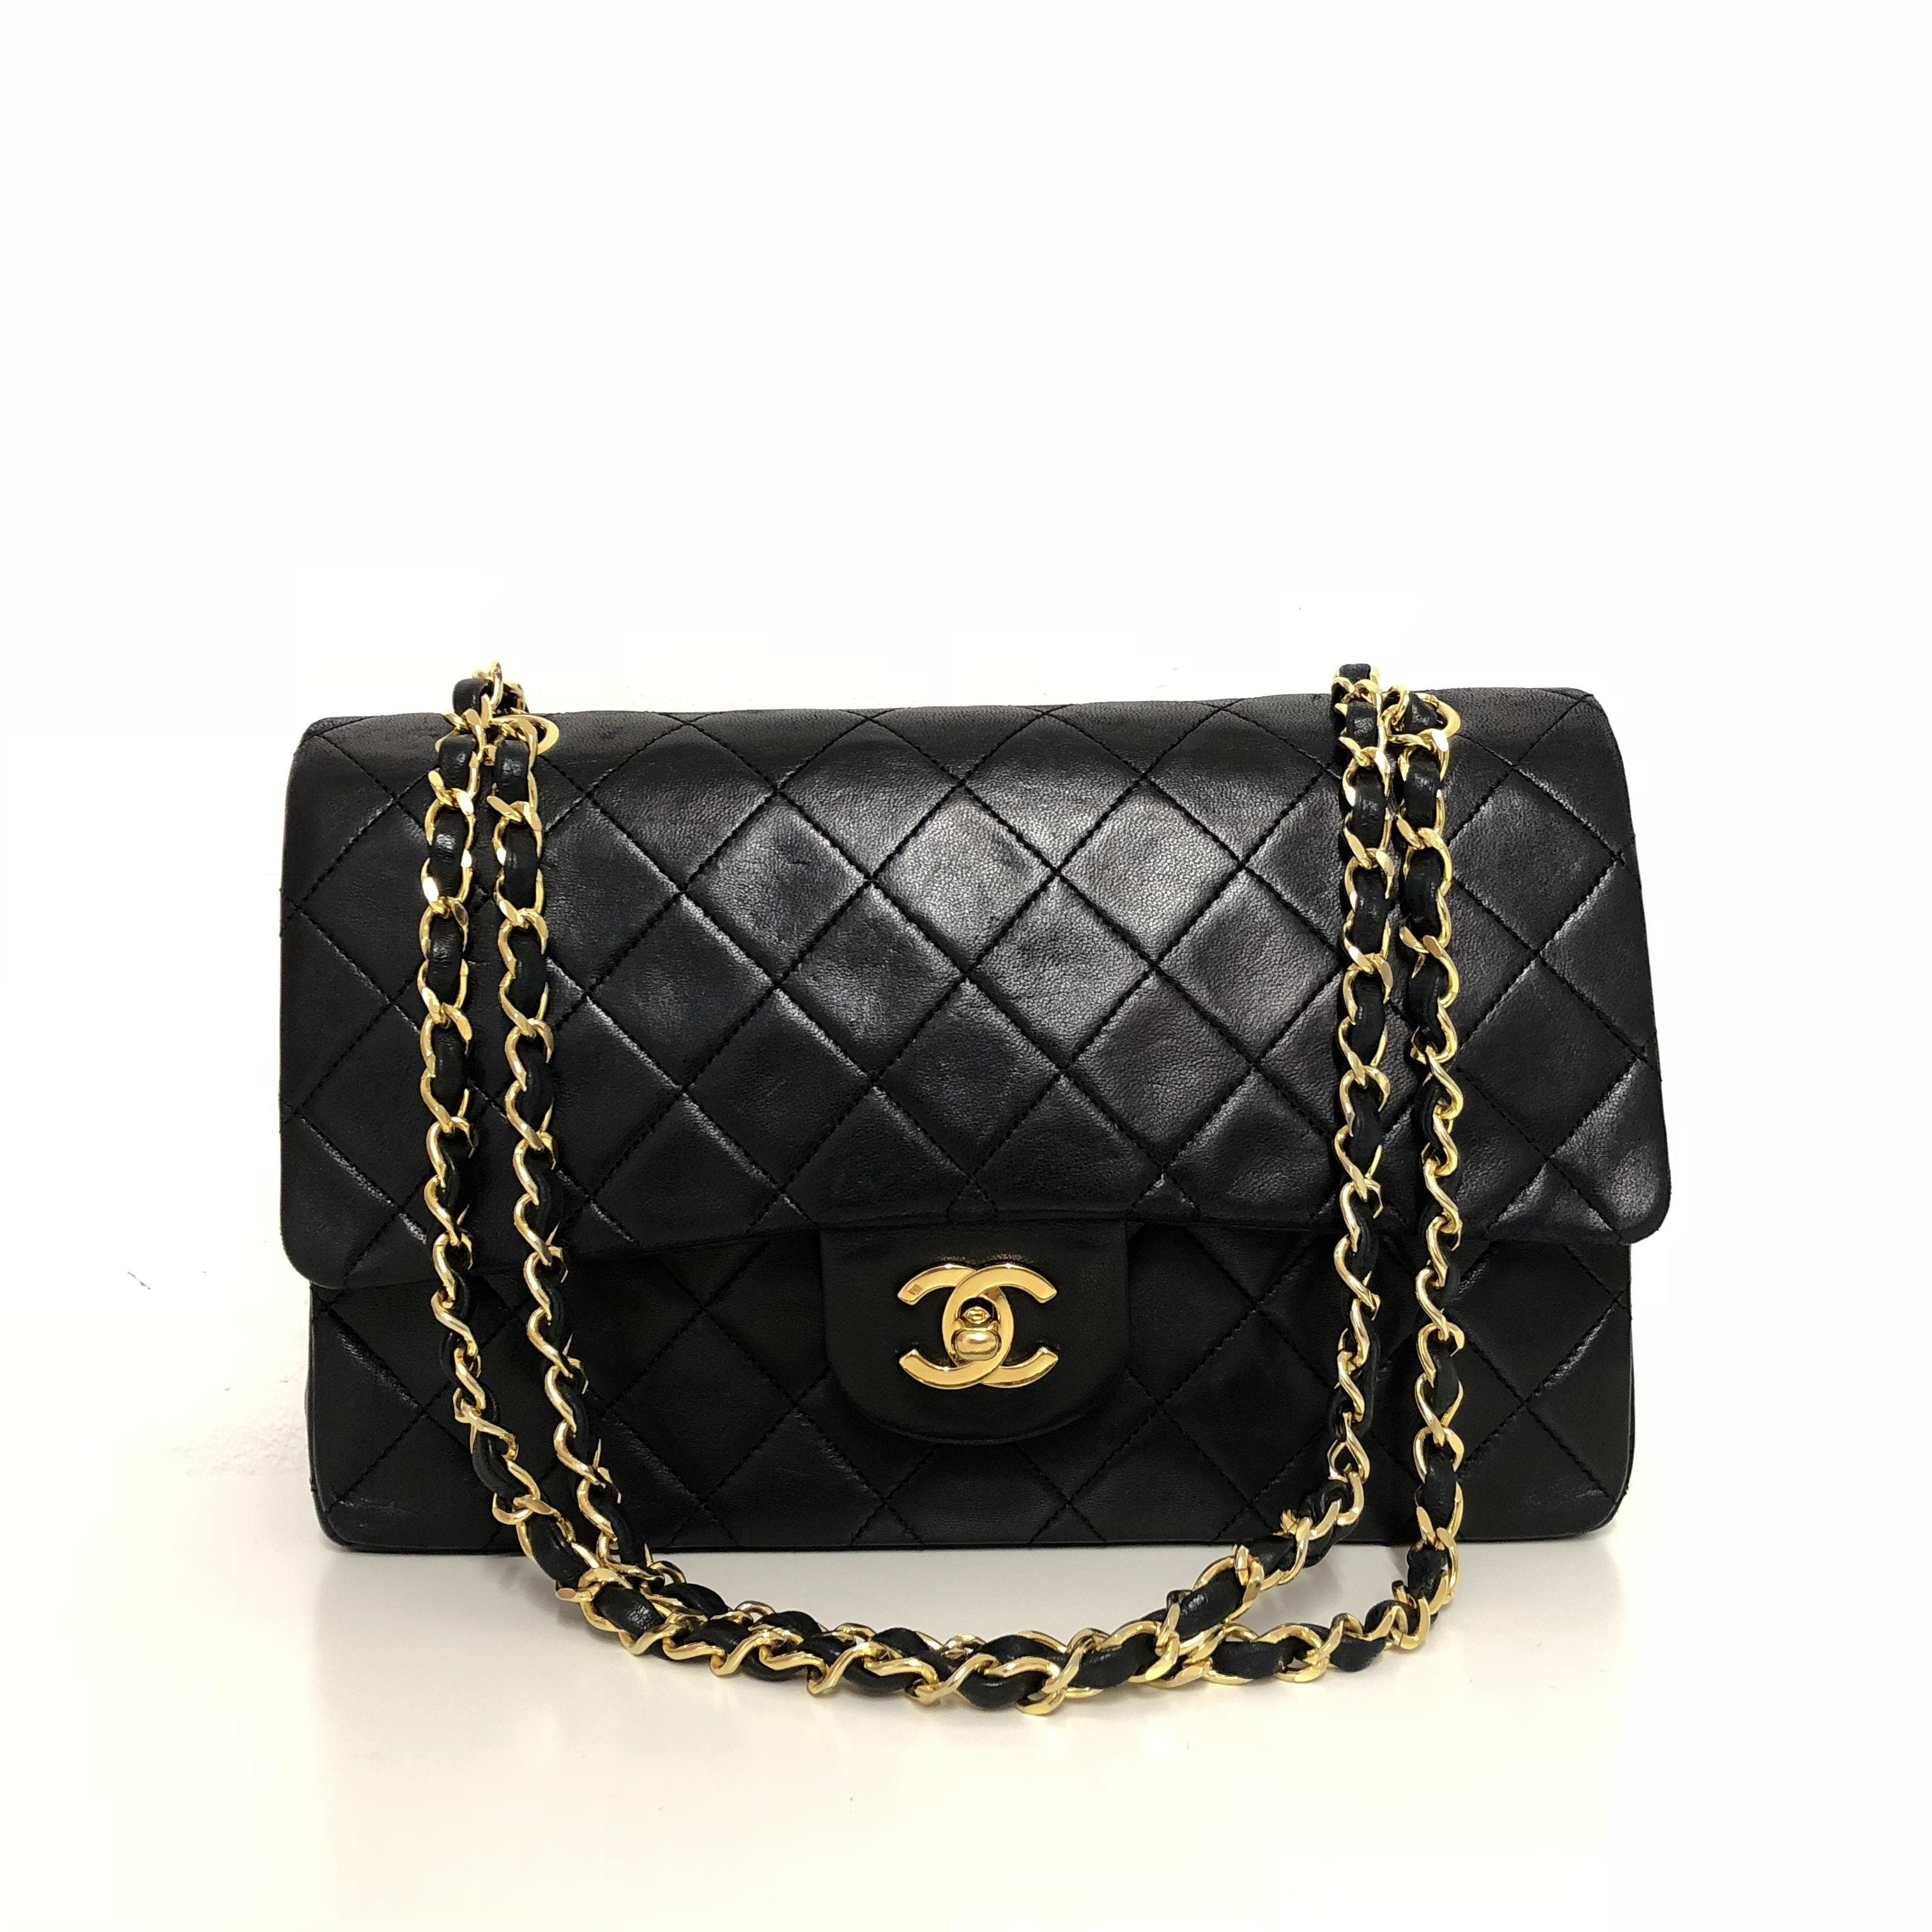 b623a6101b1c Chanel Black Quilted Leather Medium Vintage Classic Double Flap Bag ...